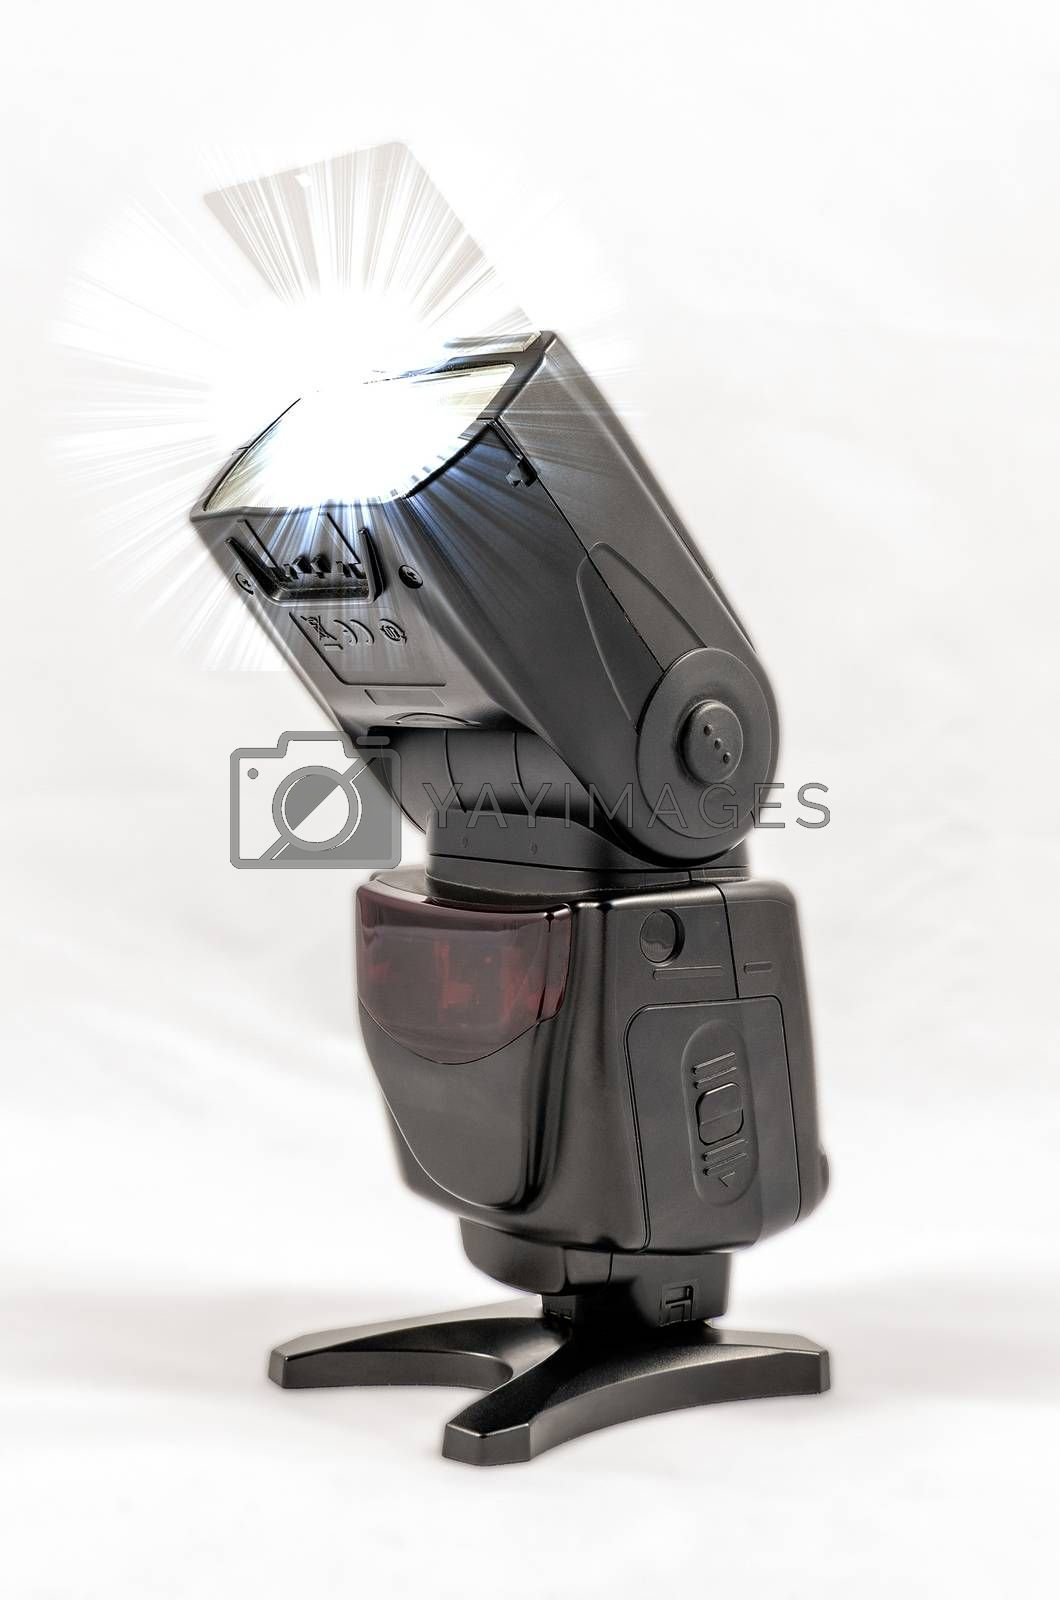 Oblique view of a black unbranded external flash unit for DSLR camera with bounce card extended while shooting